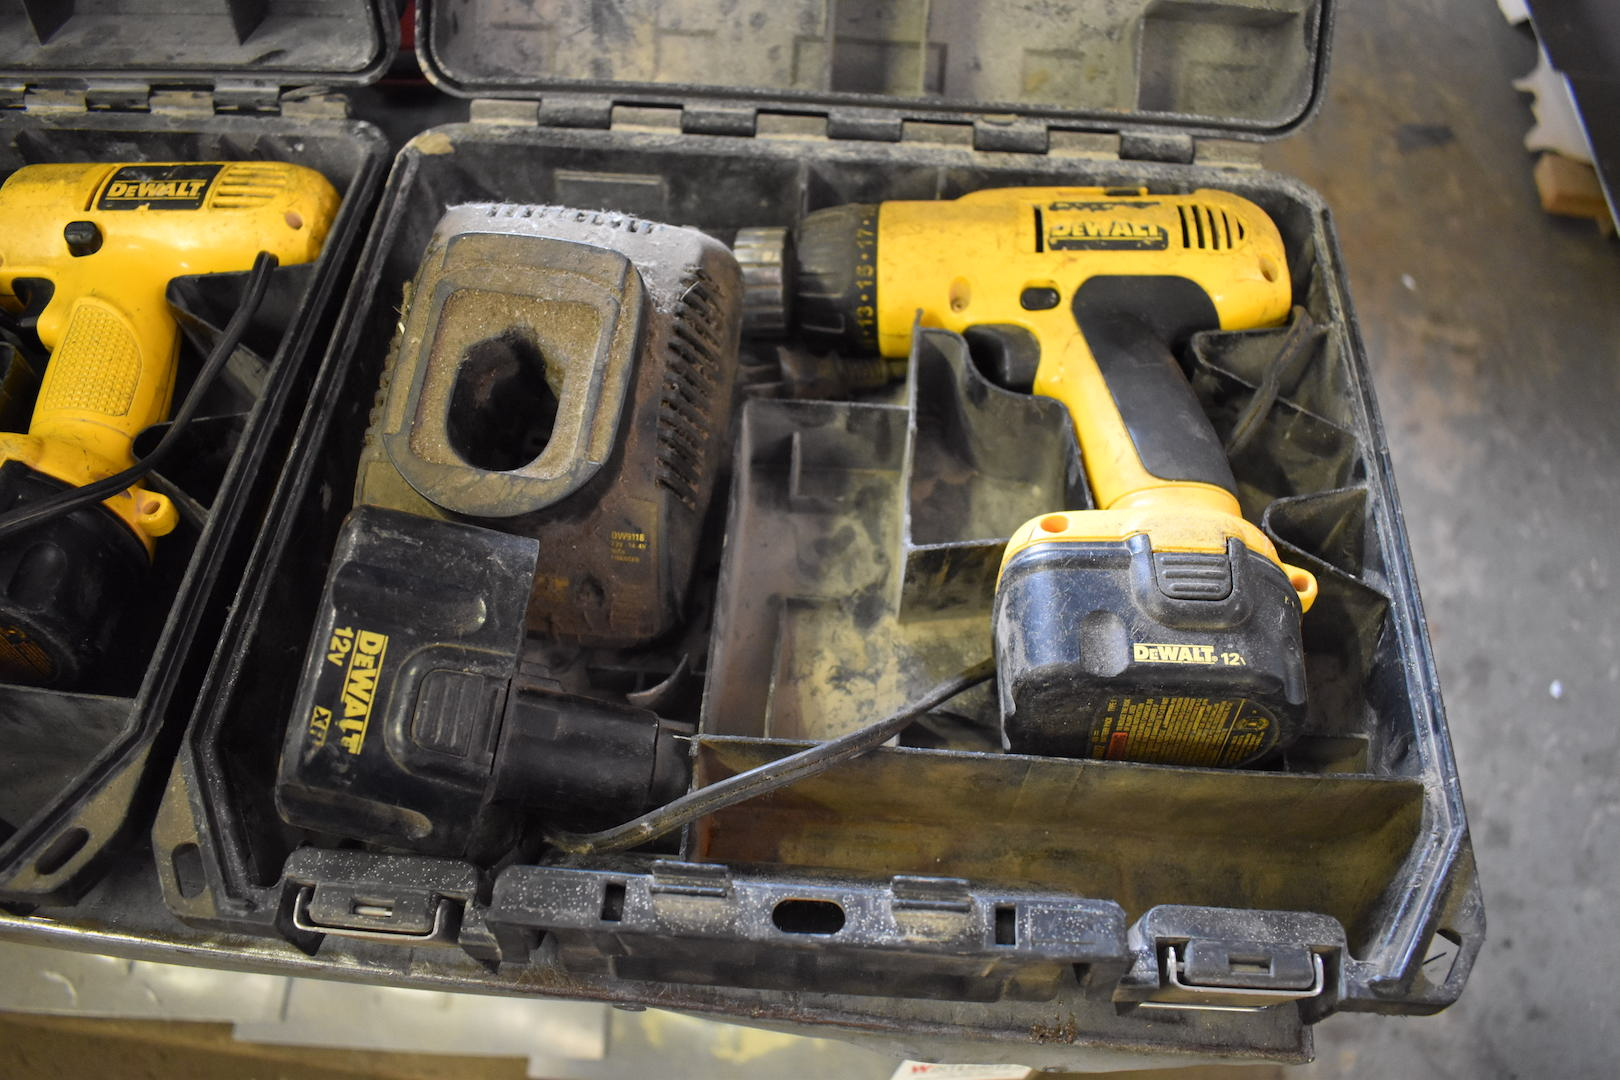 "Lot 6 - Dewalt Model DW328 3/8"" Variable Speed Cordless Drill/Driver"